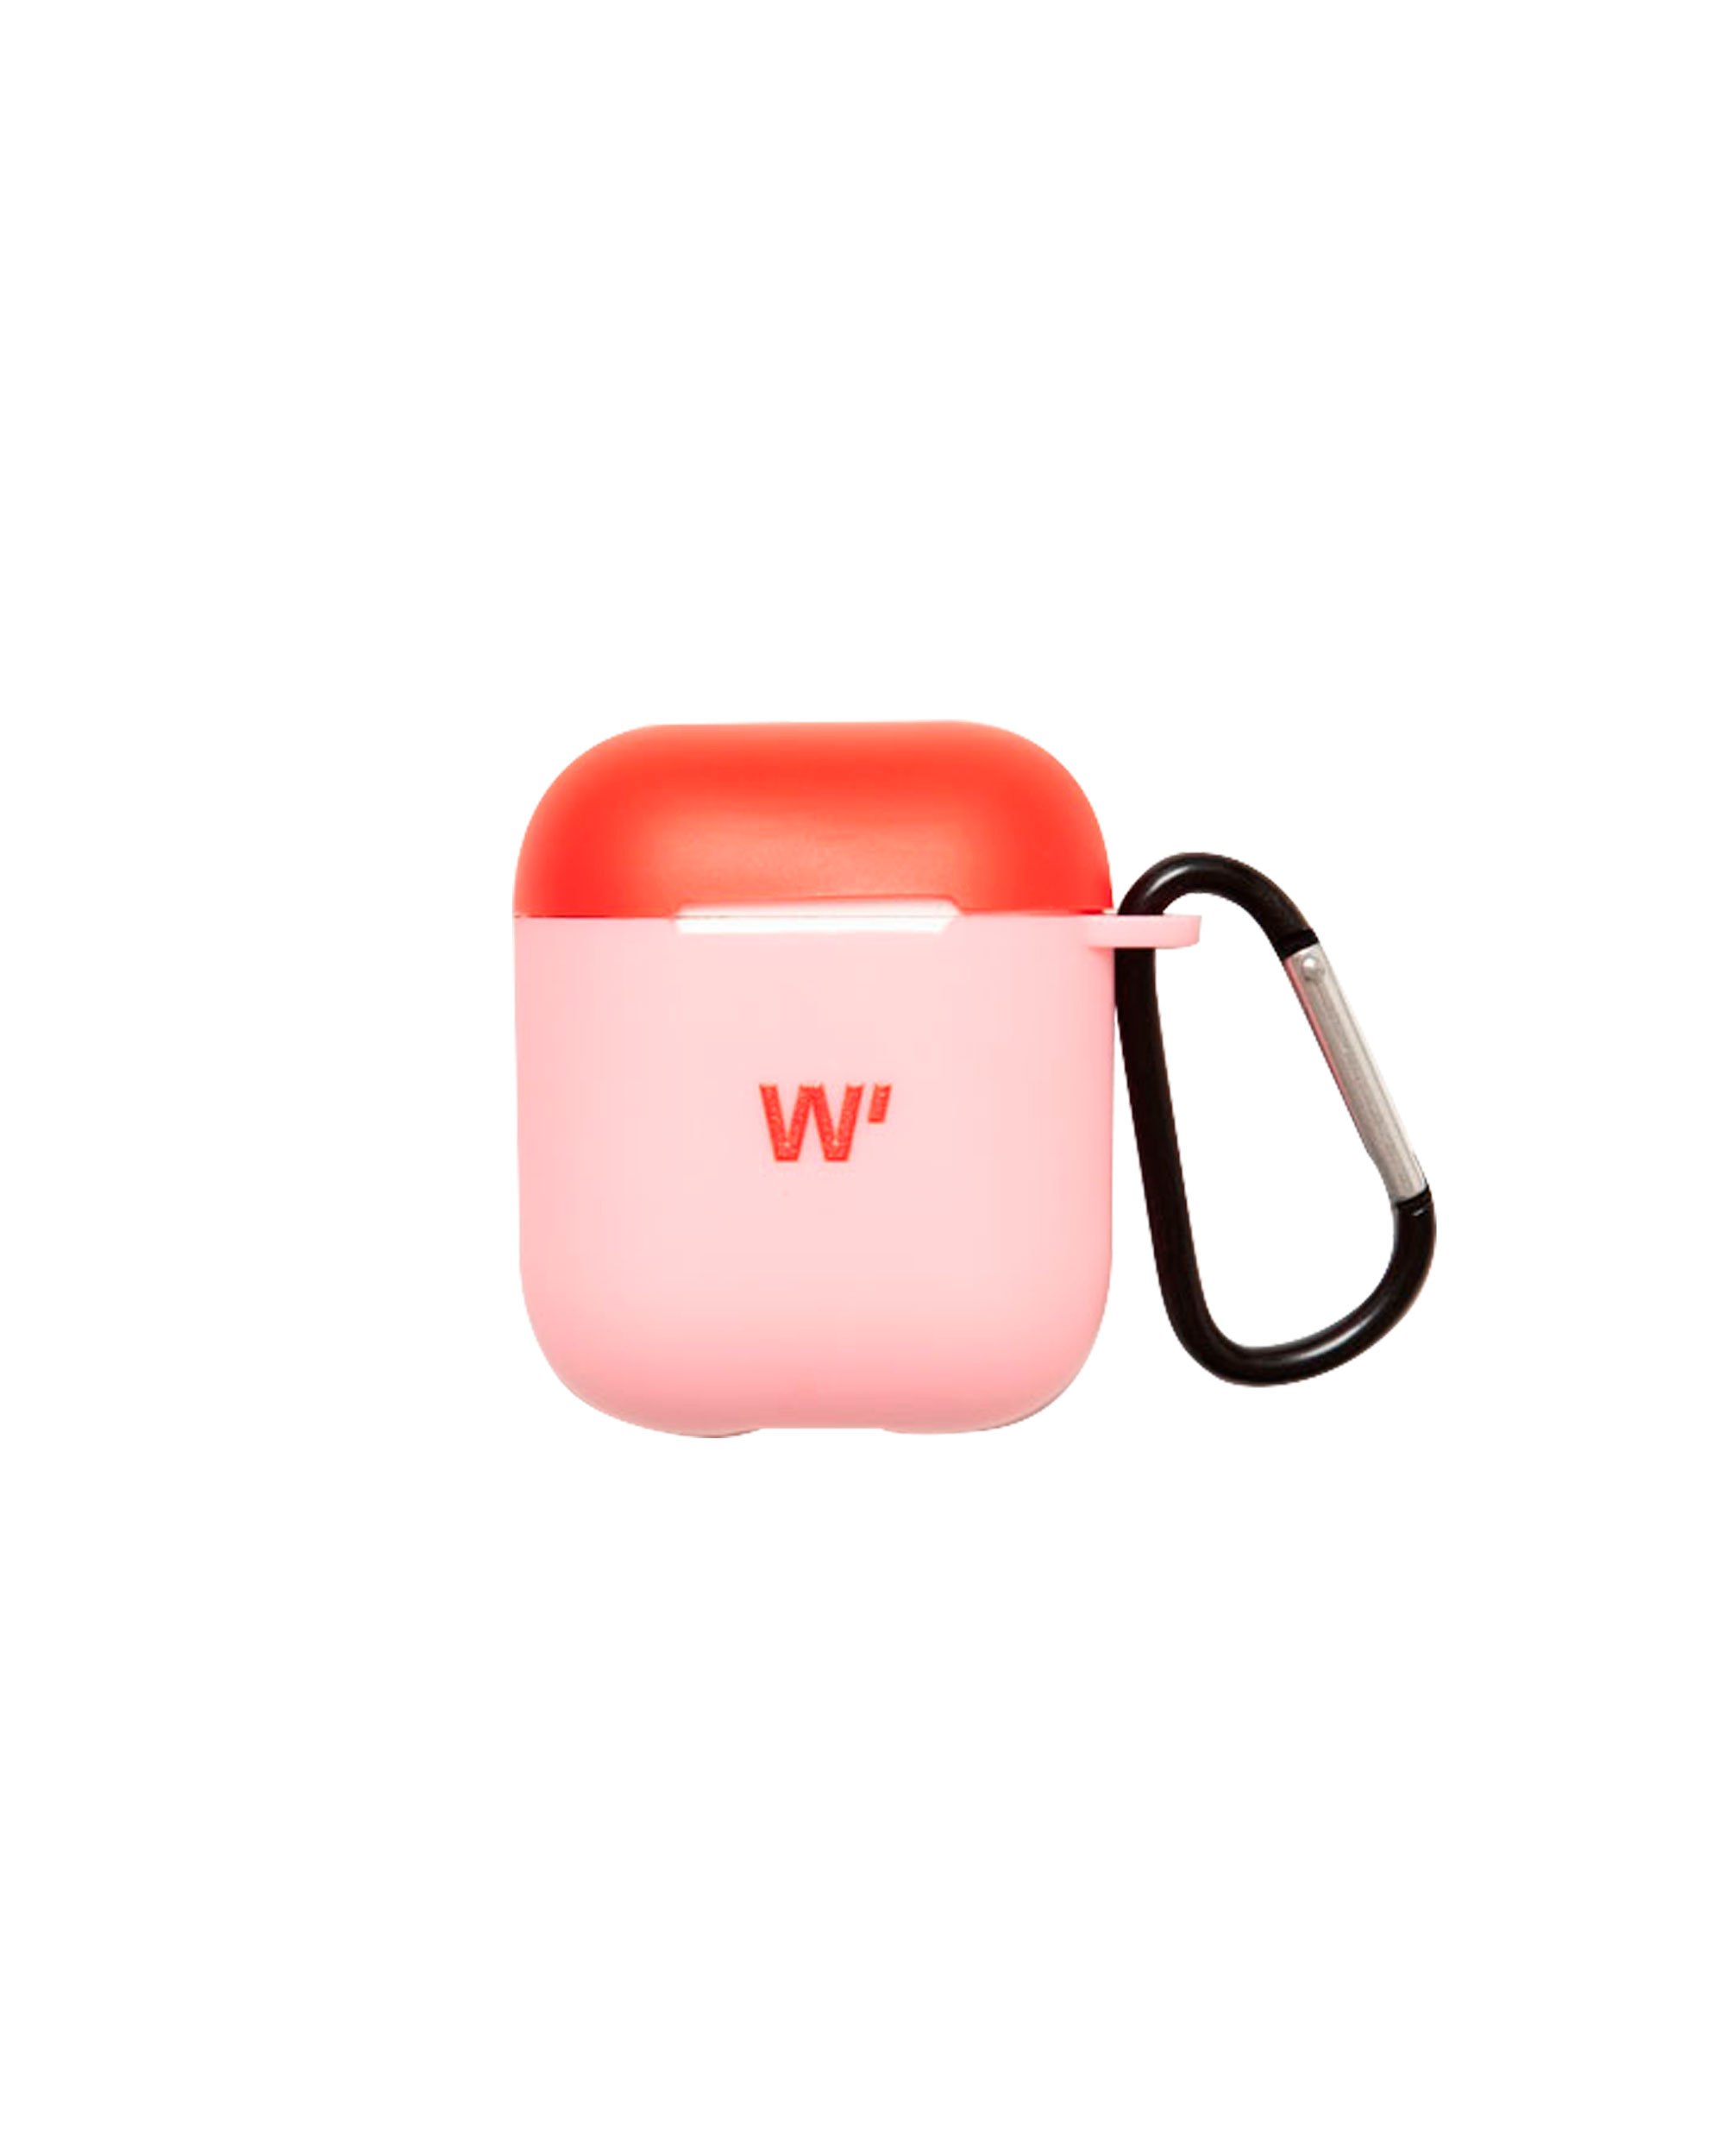 BLOCK PINK - Coque pour Airpods